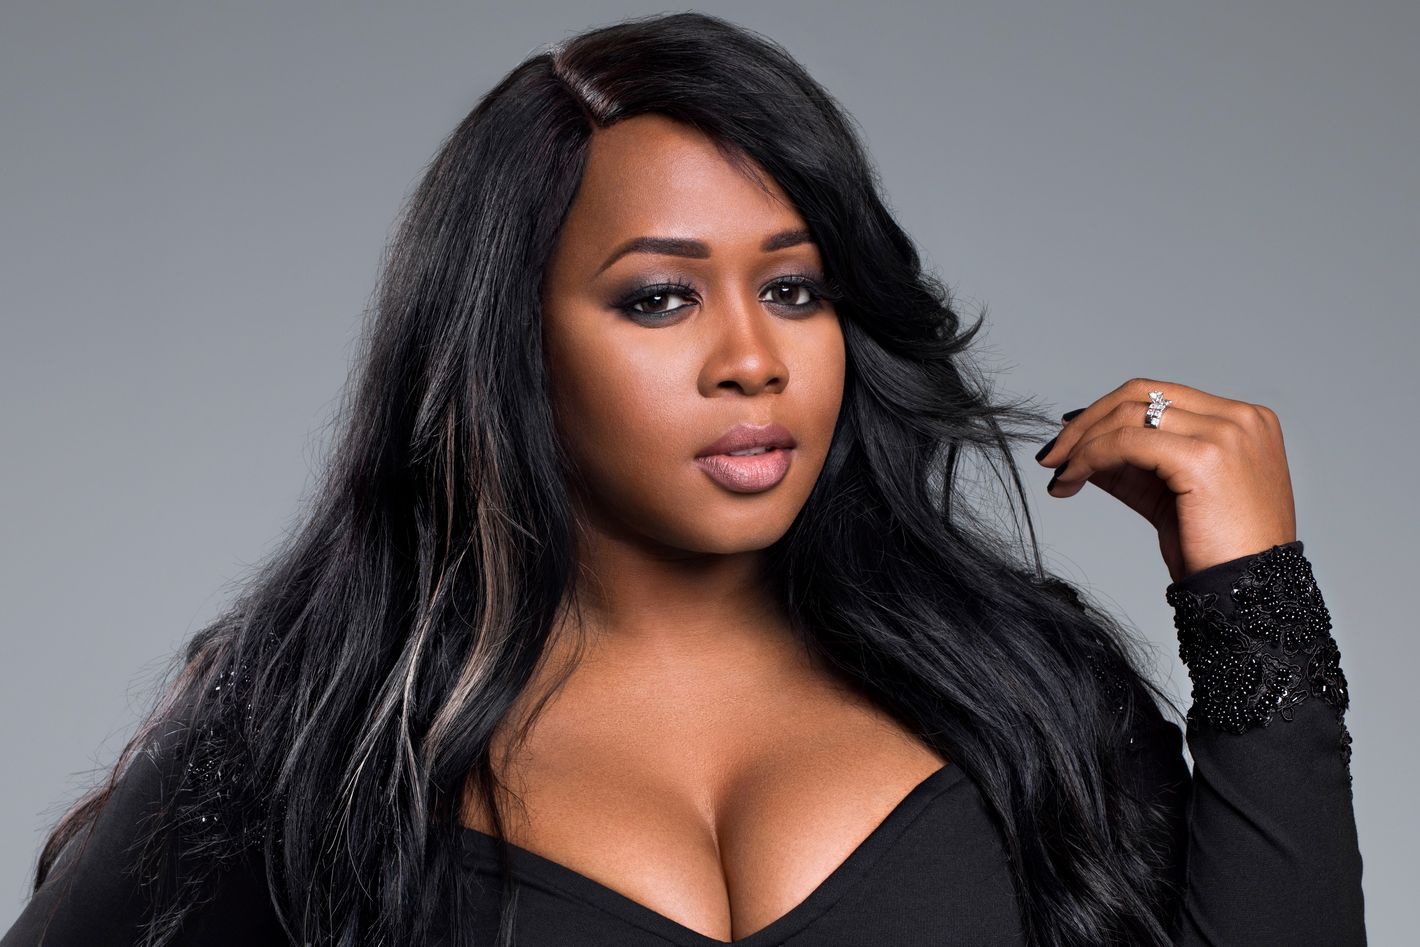 Instagram Remy Ma nudes (86 photo), Sexy, Leaked, Feet, lingerie 2018